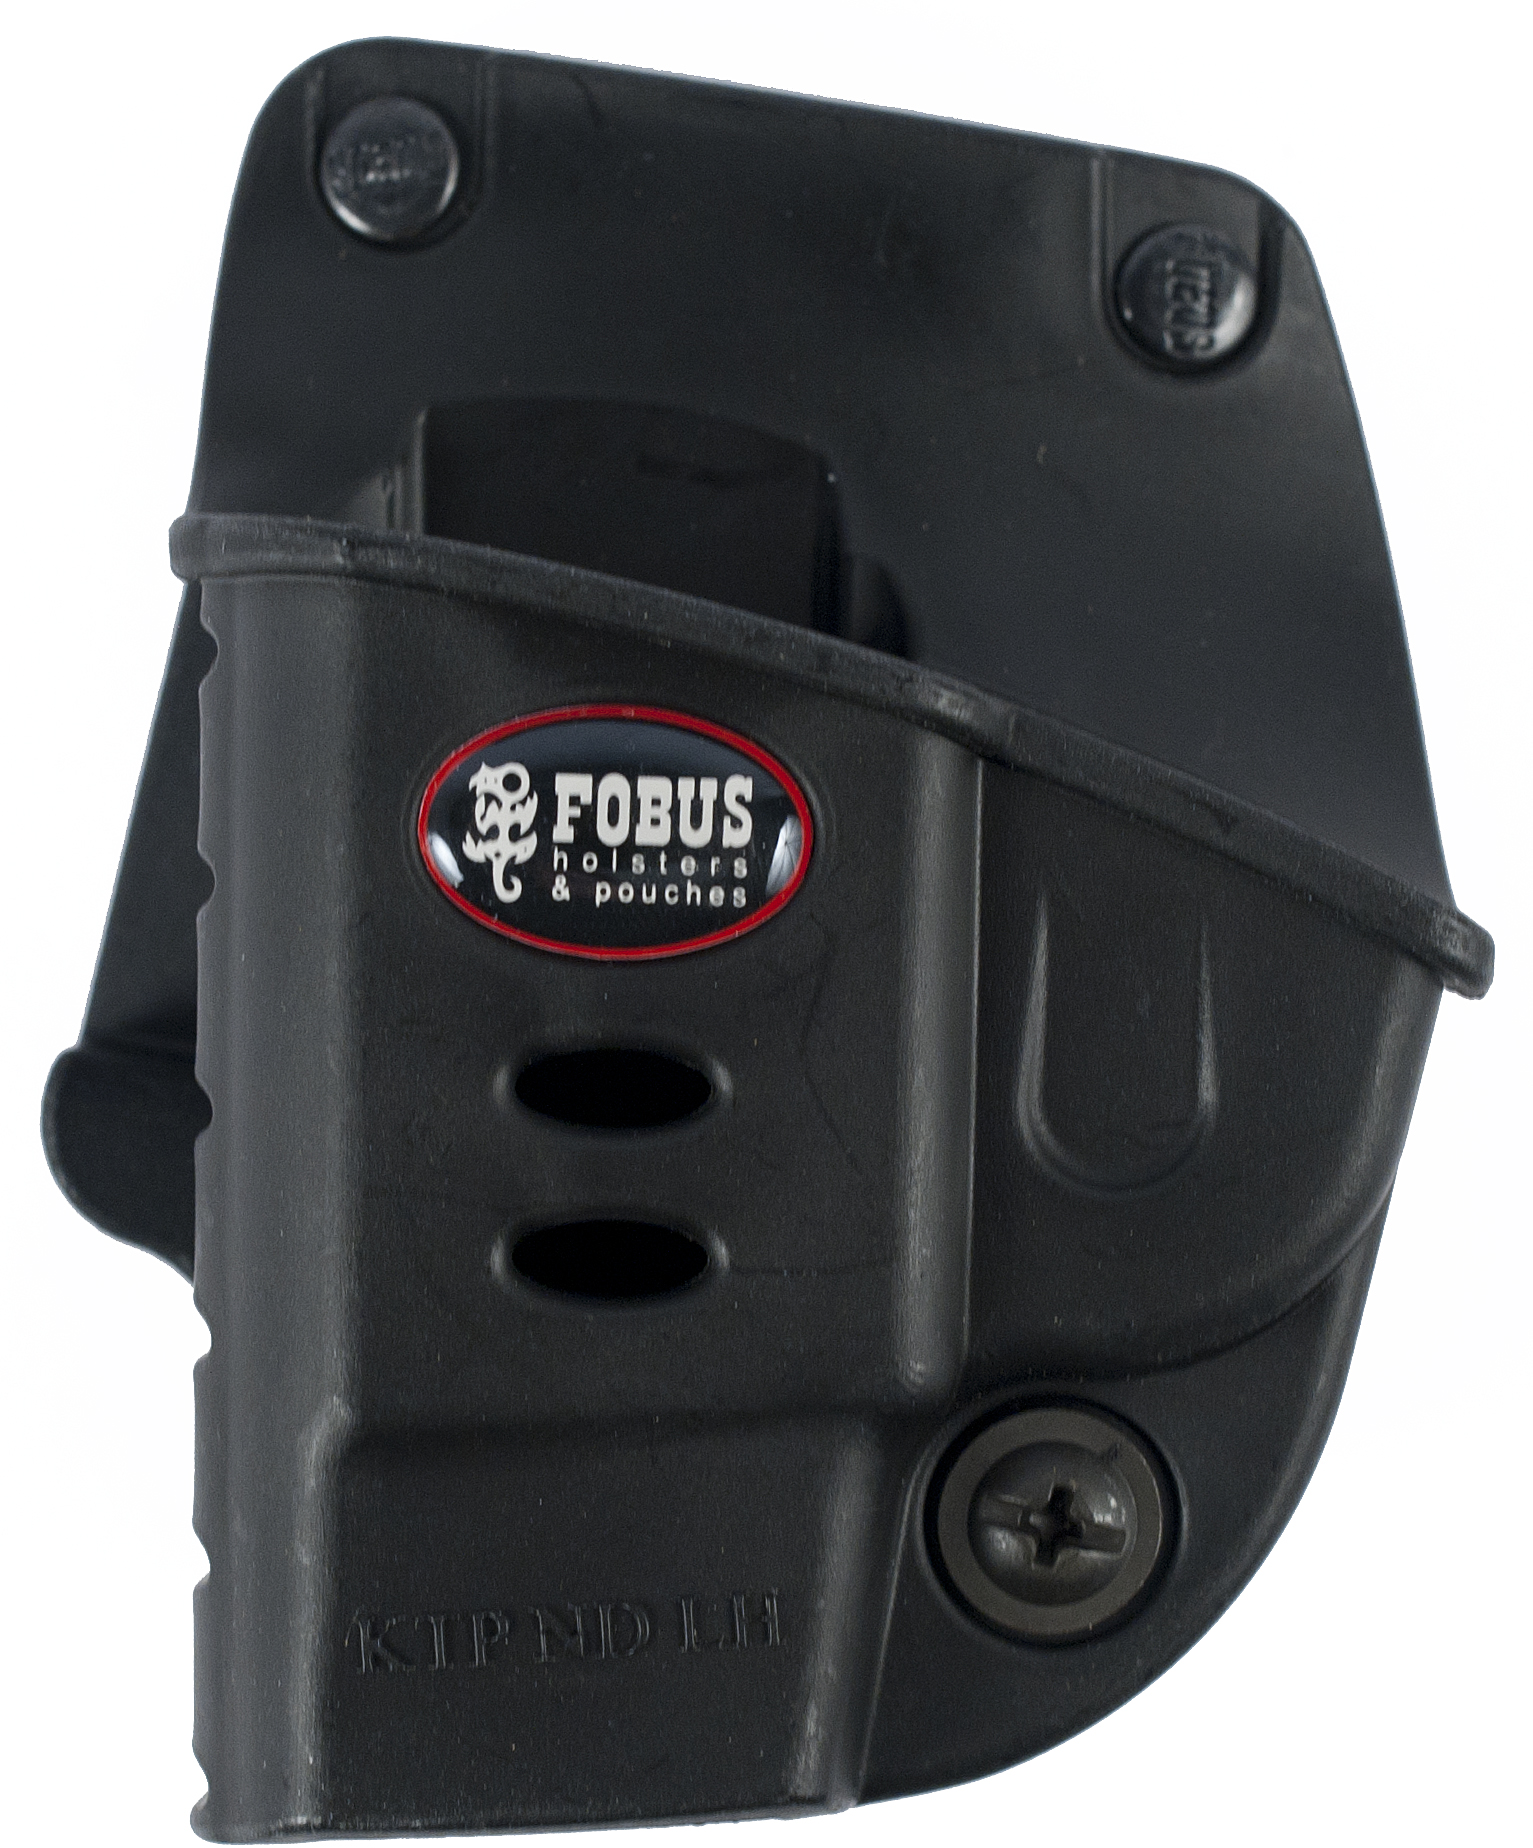 Fobus Holster for Ruger LCP and Kel-Tec P-3AT  380 2nd gen &  32 2nd gen